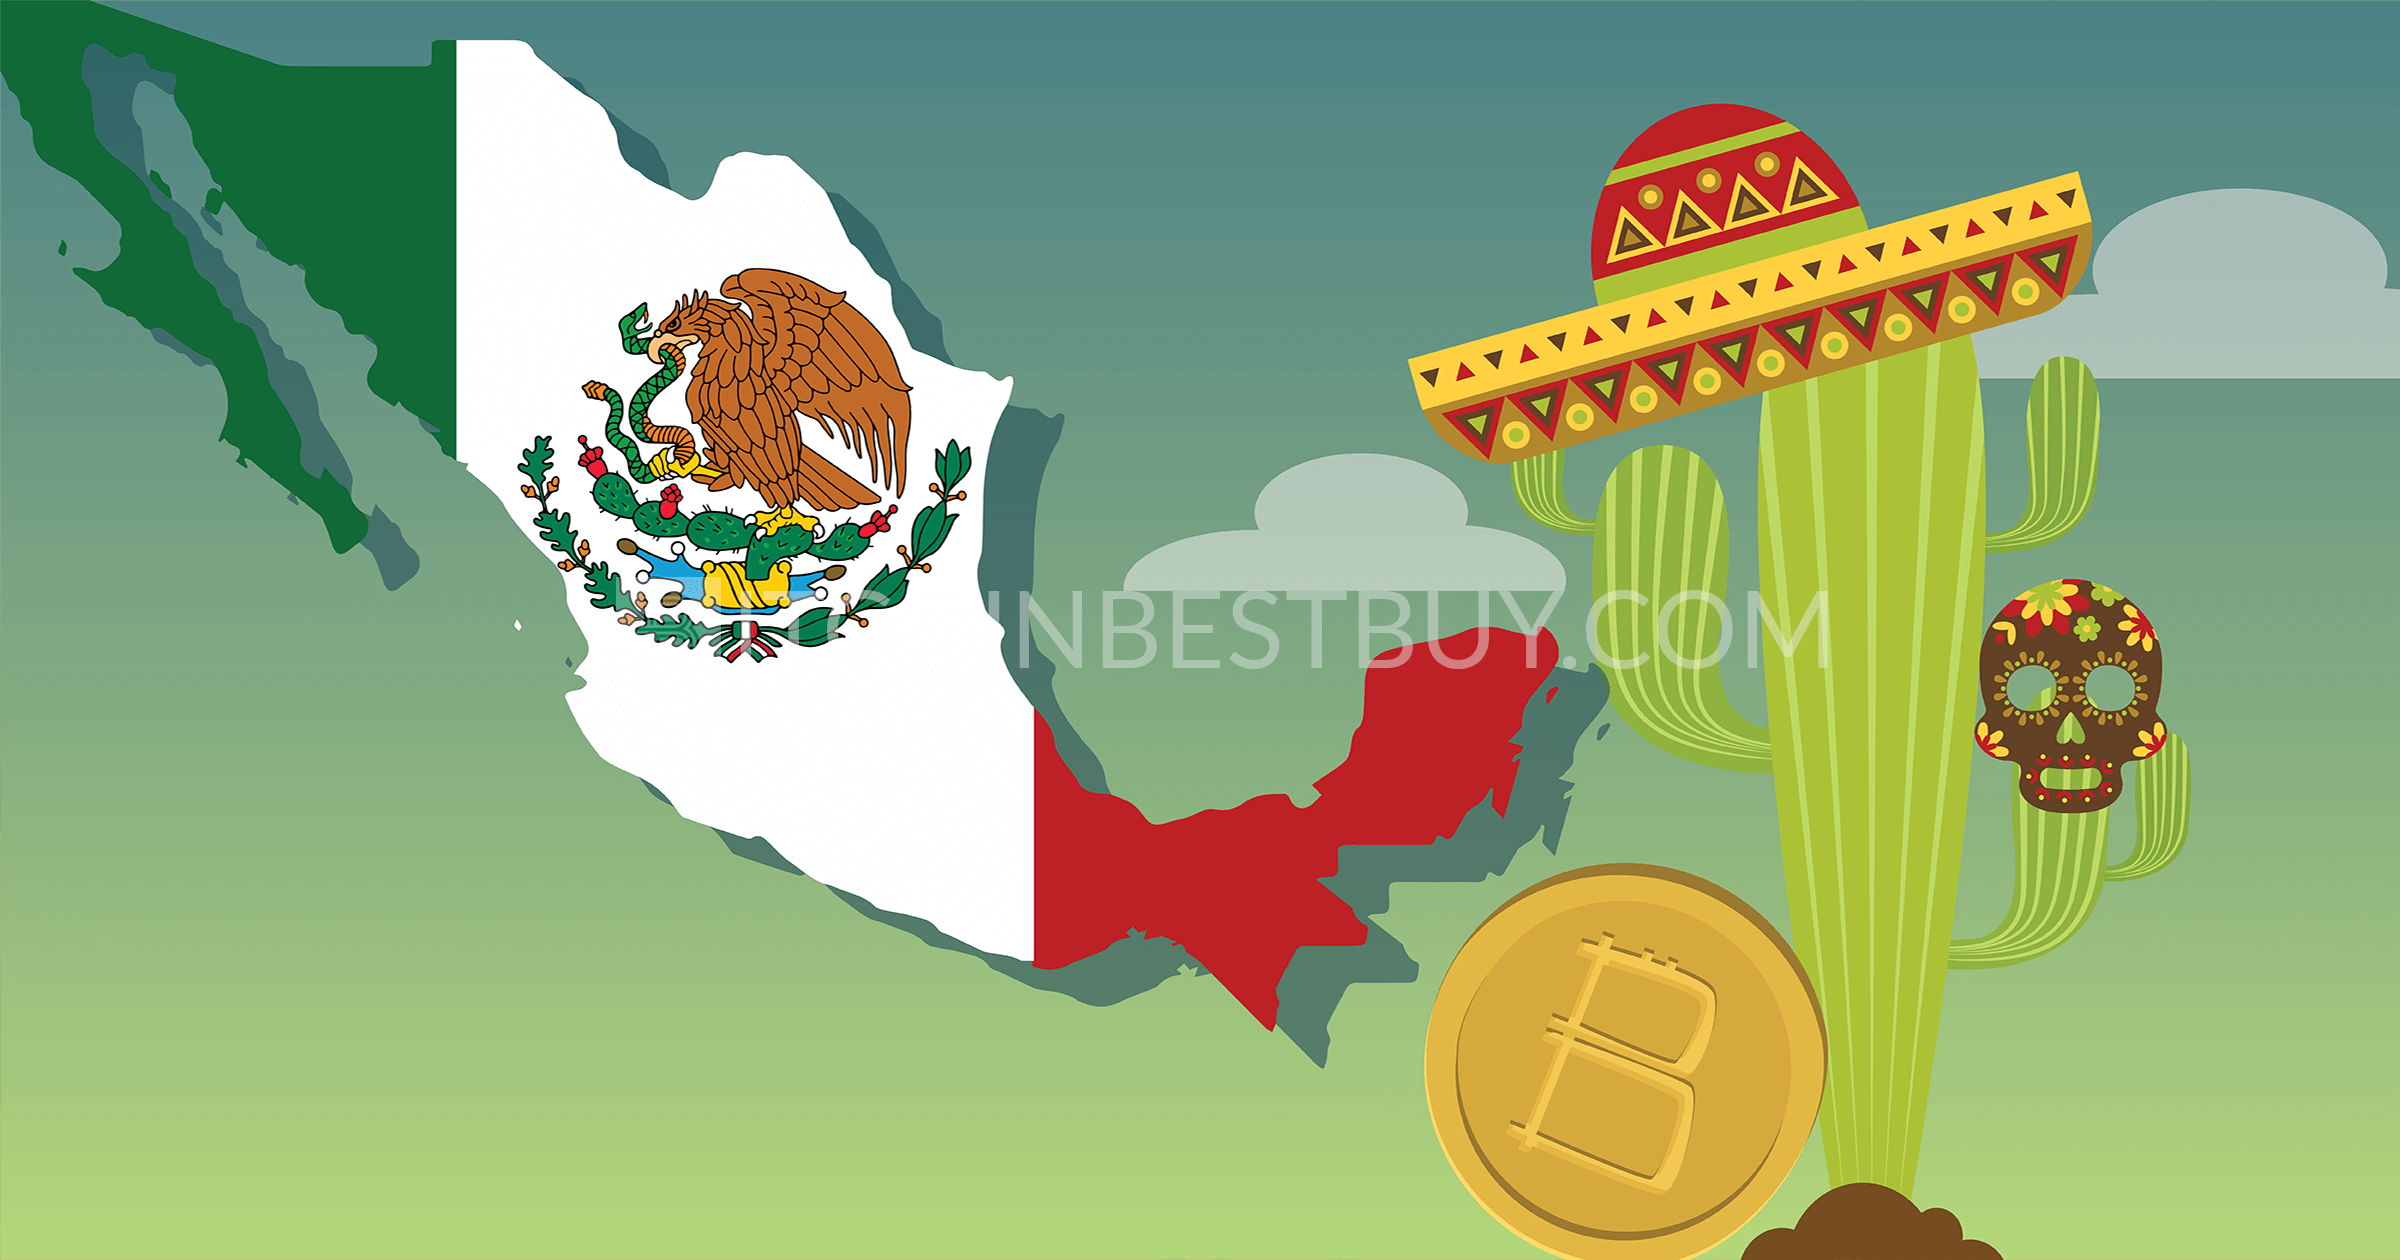 Buy bitcoin in Mexico